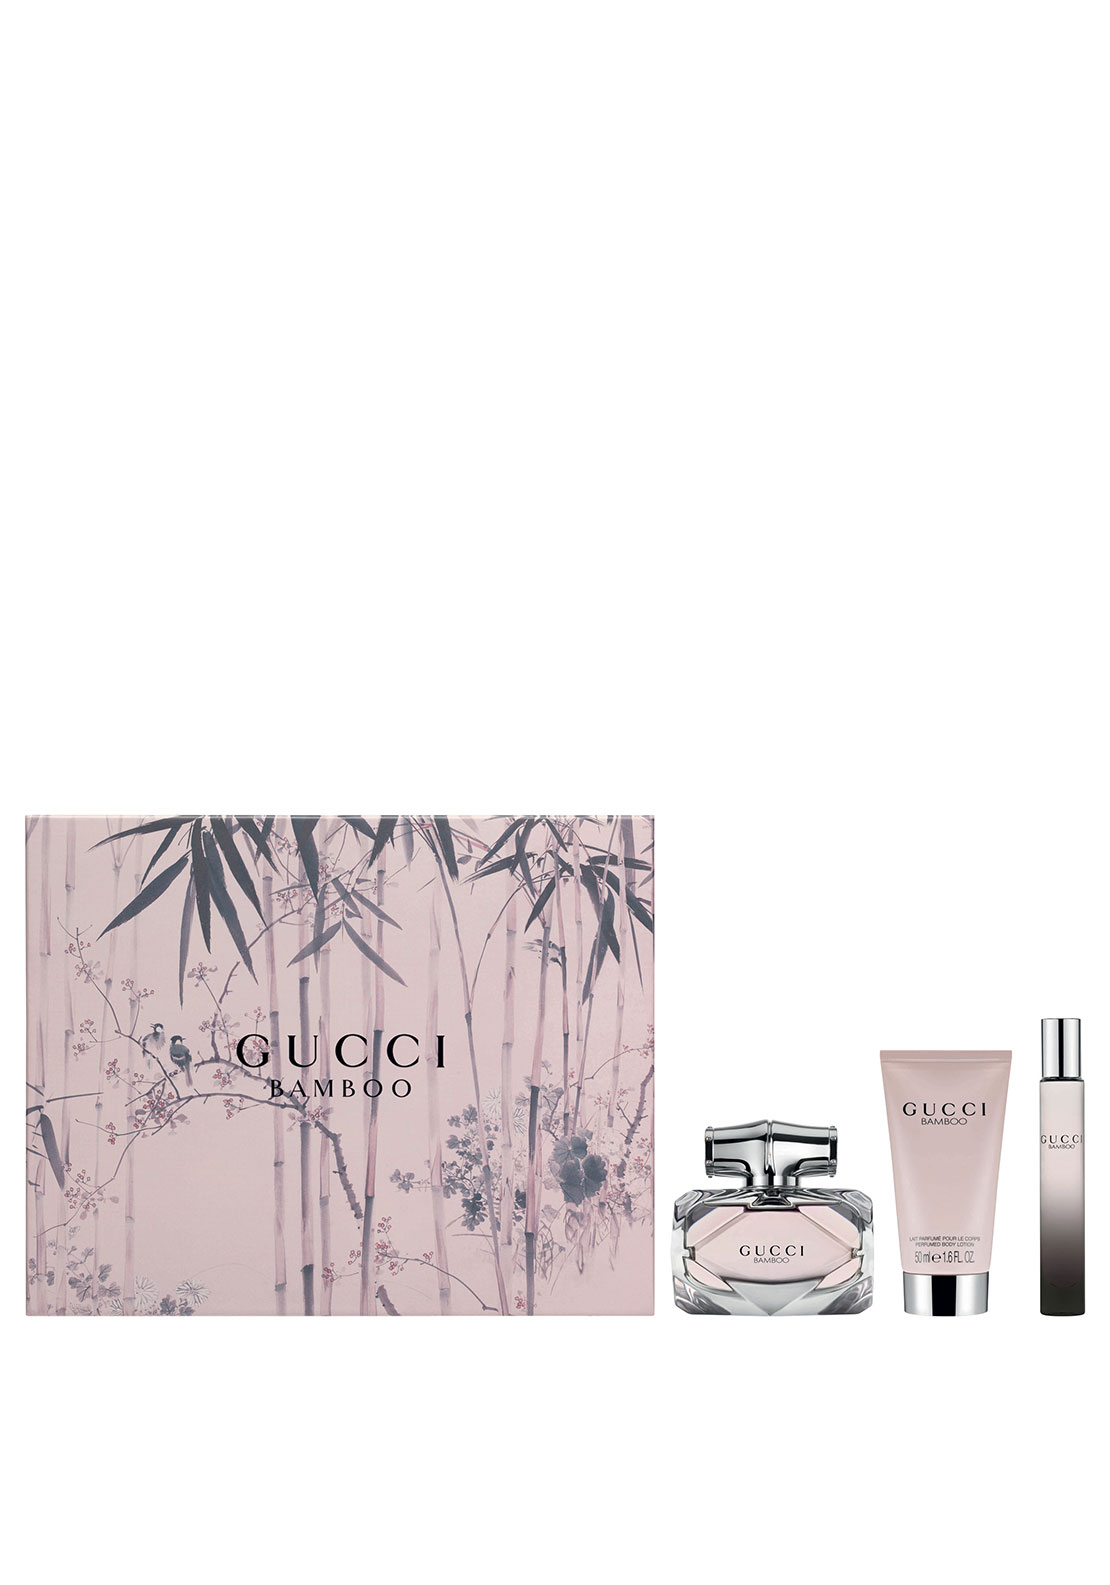 Gucci Bamboo Gift Set for Her